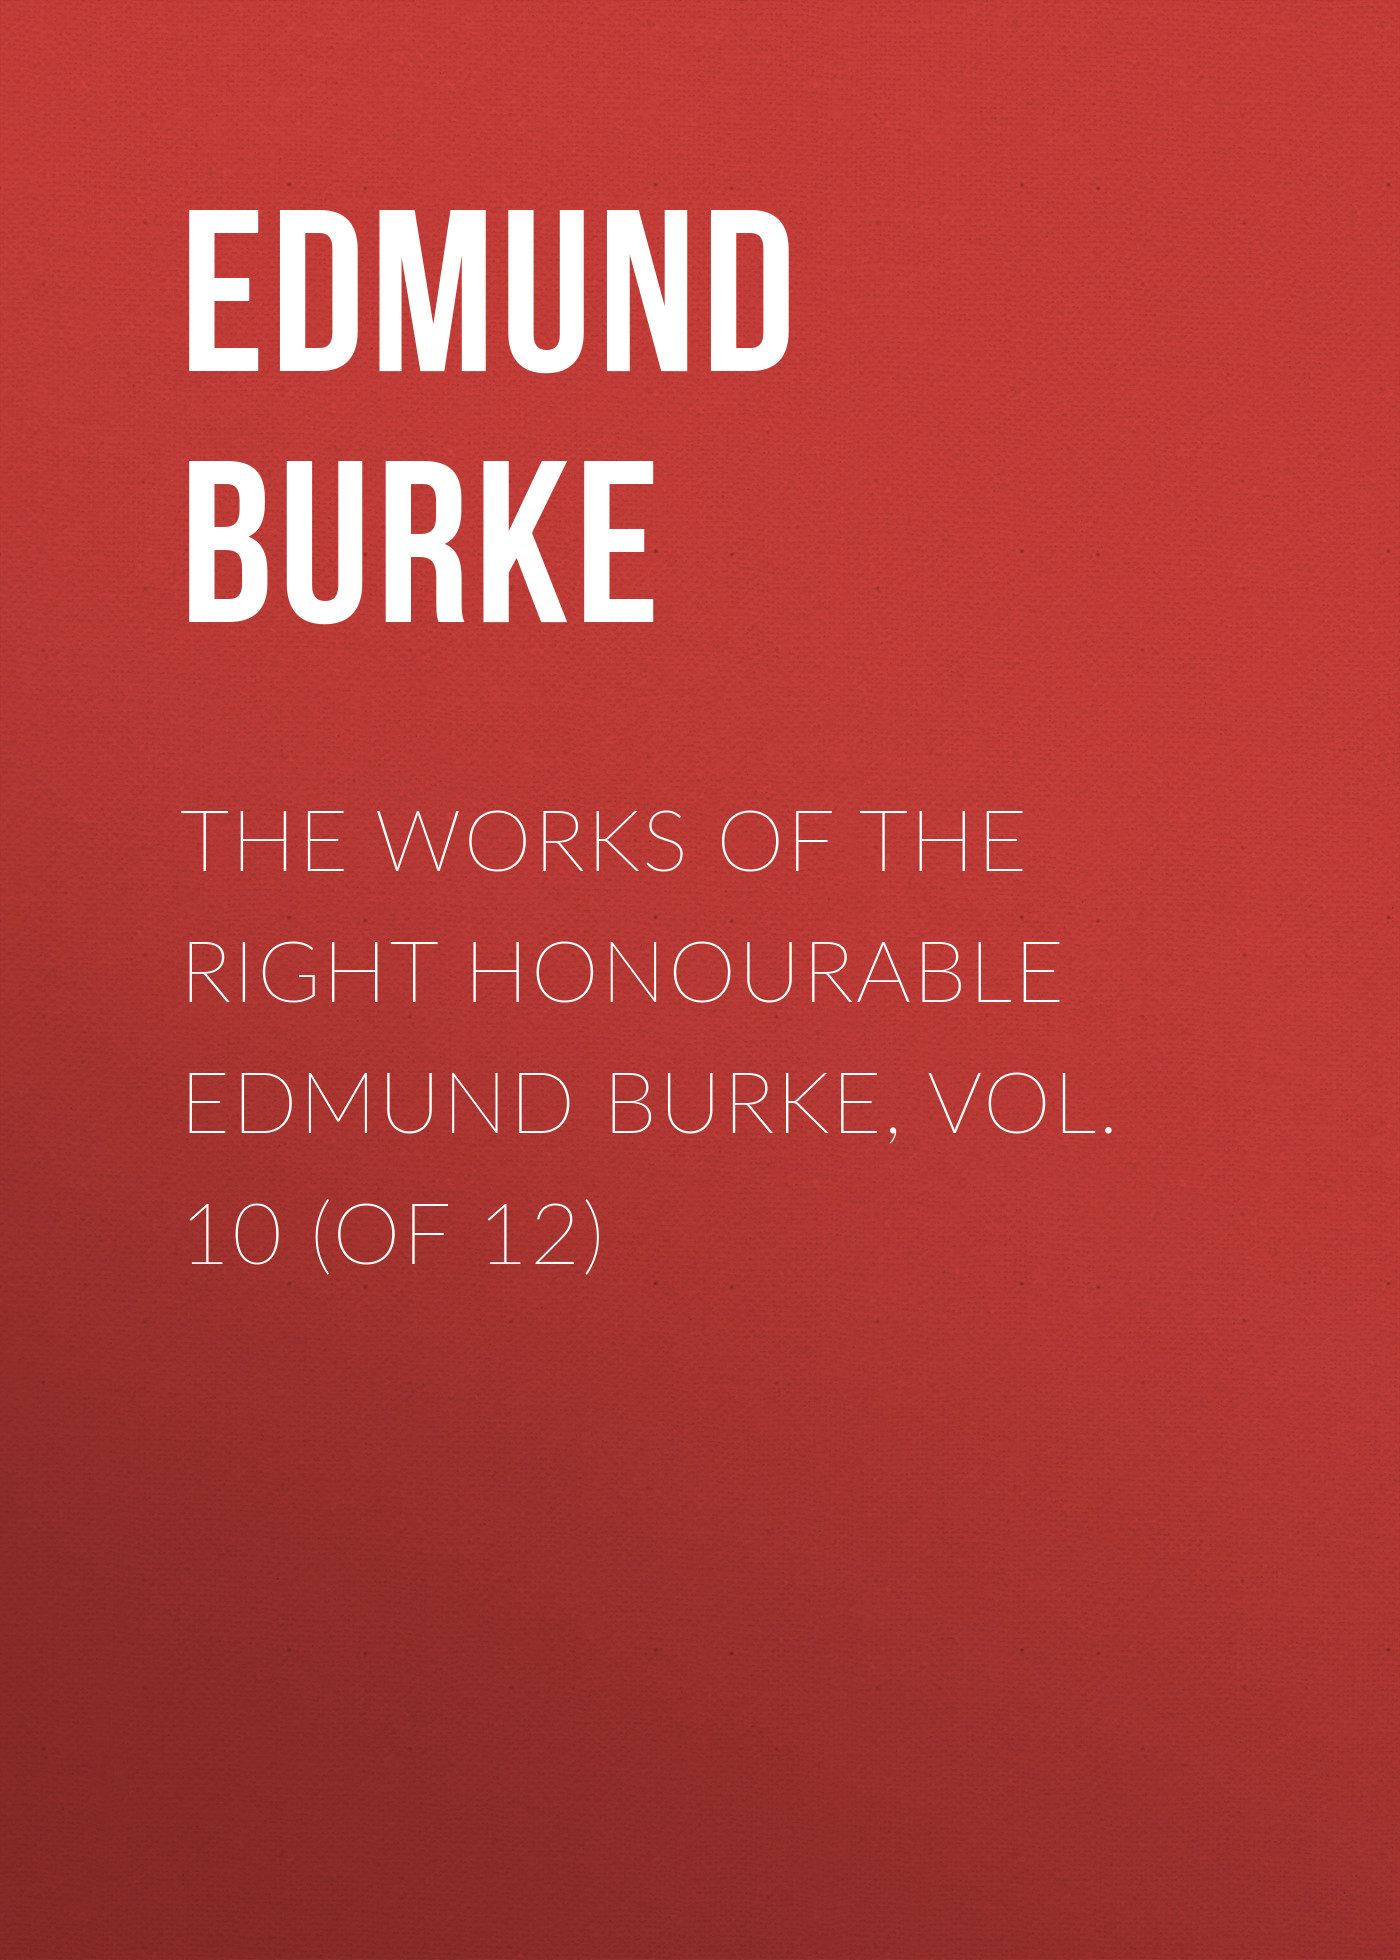 Edmund Burke The Works of the Right Honourable Edmund Burke, Vol. 10 (of 12) burke edmund the speeches of the right honourable edmund burke on the impeachment of warren hastings